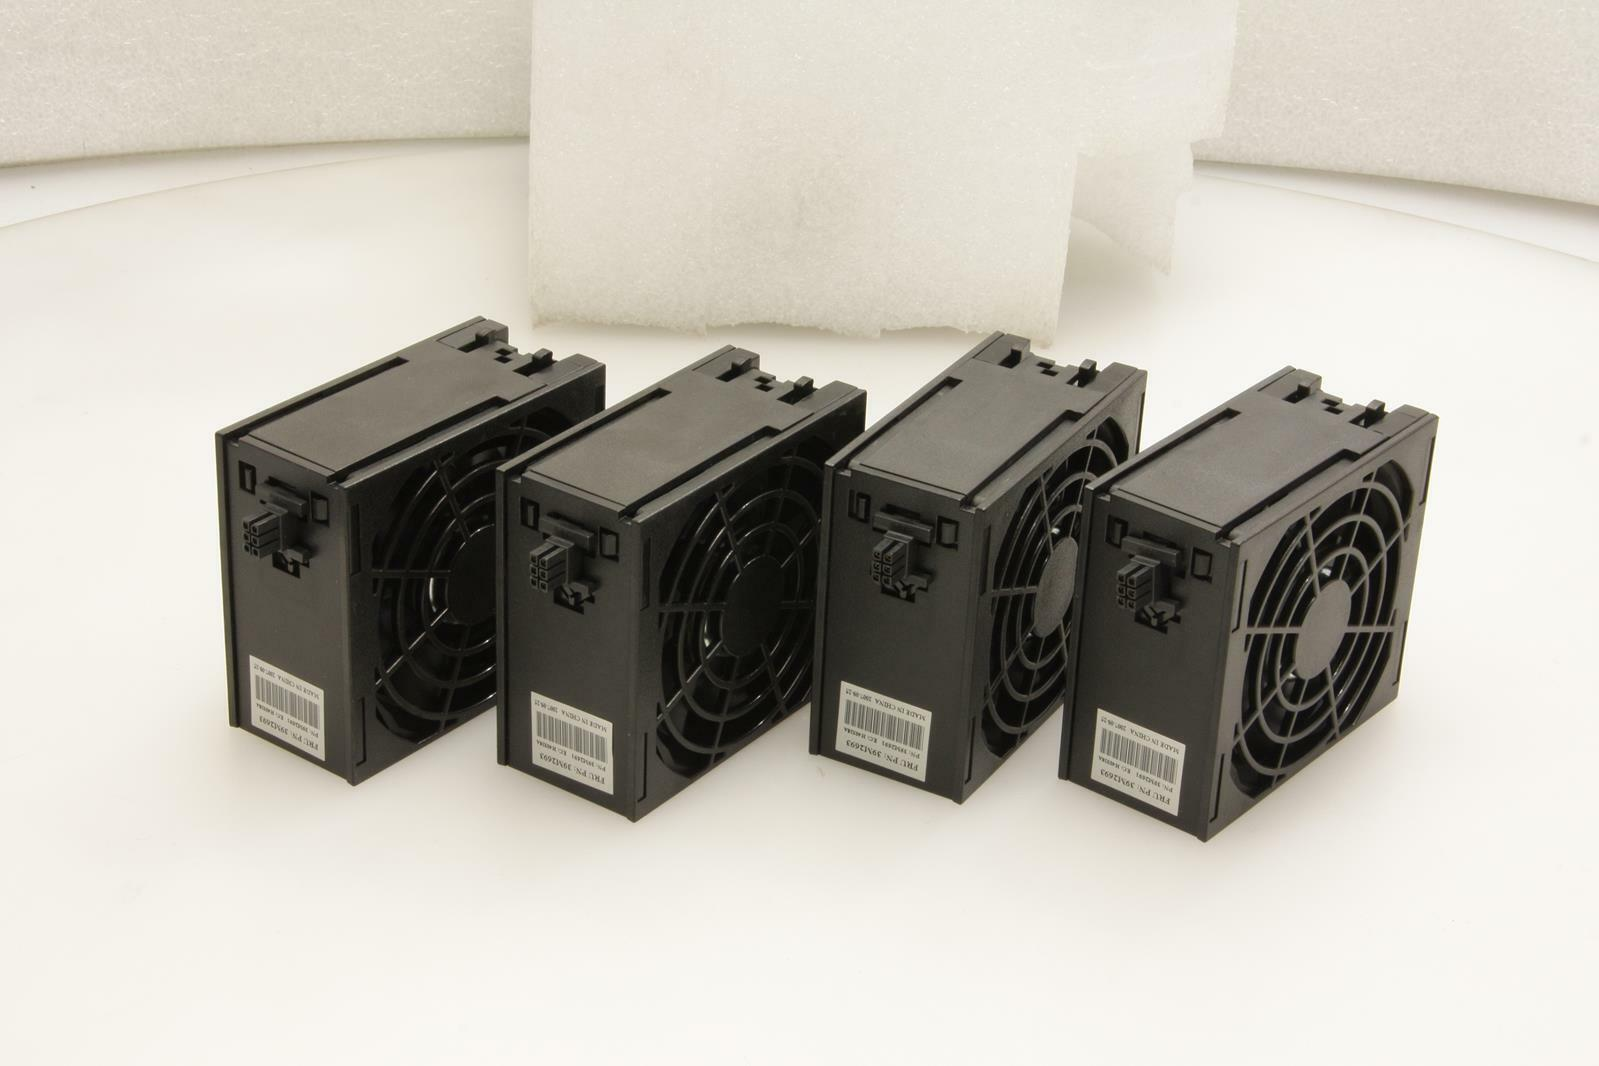 LOT OF 4 IBM 39M2693 xSeries 80mm Cooling Case-Fan Assy.TESTED.SKU194271